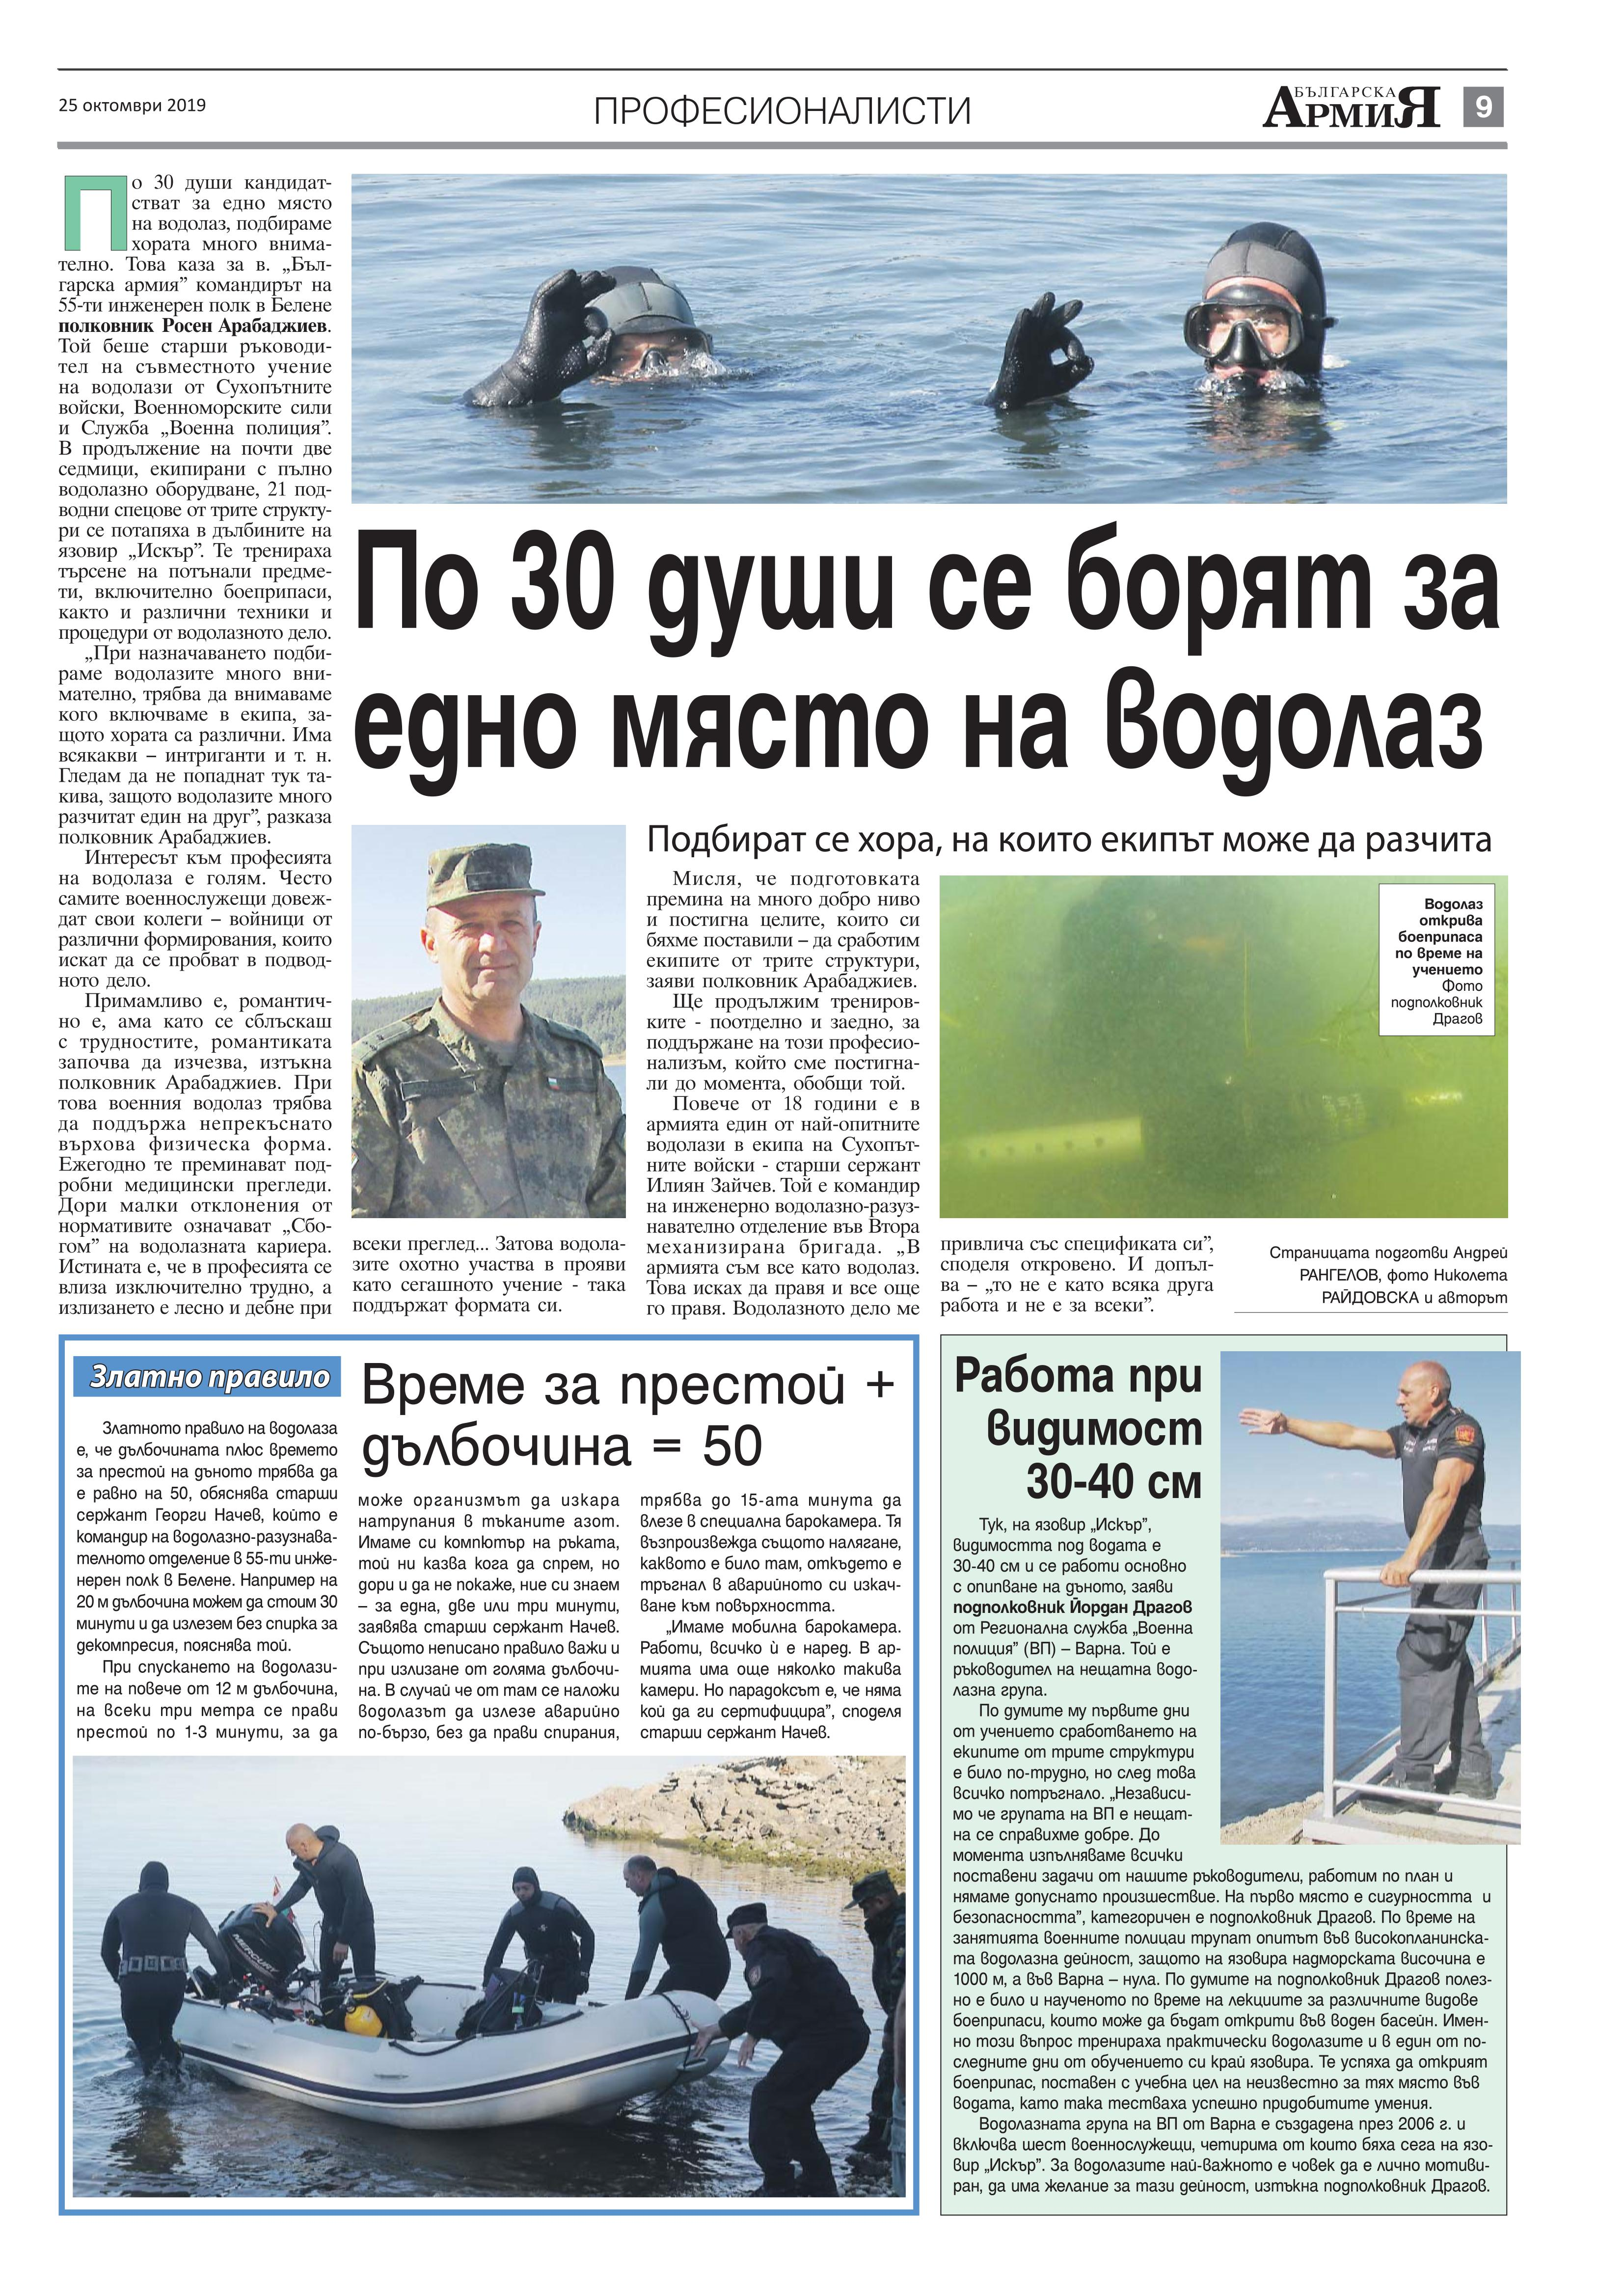 https://www.armymedia.bg/wp-content/uploads/2015/06/09.page1_-111.jpg